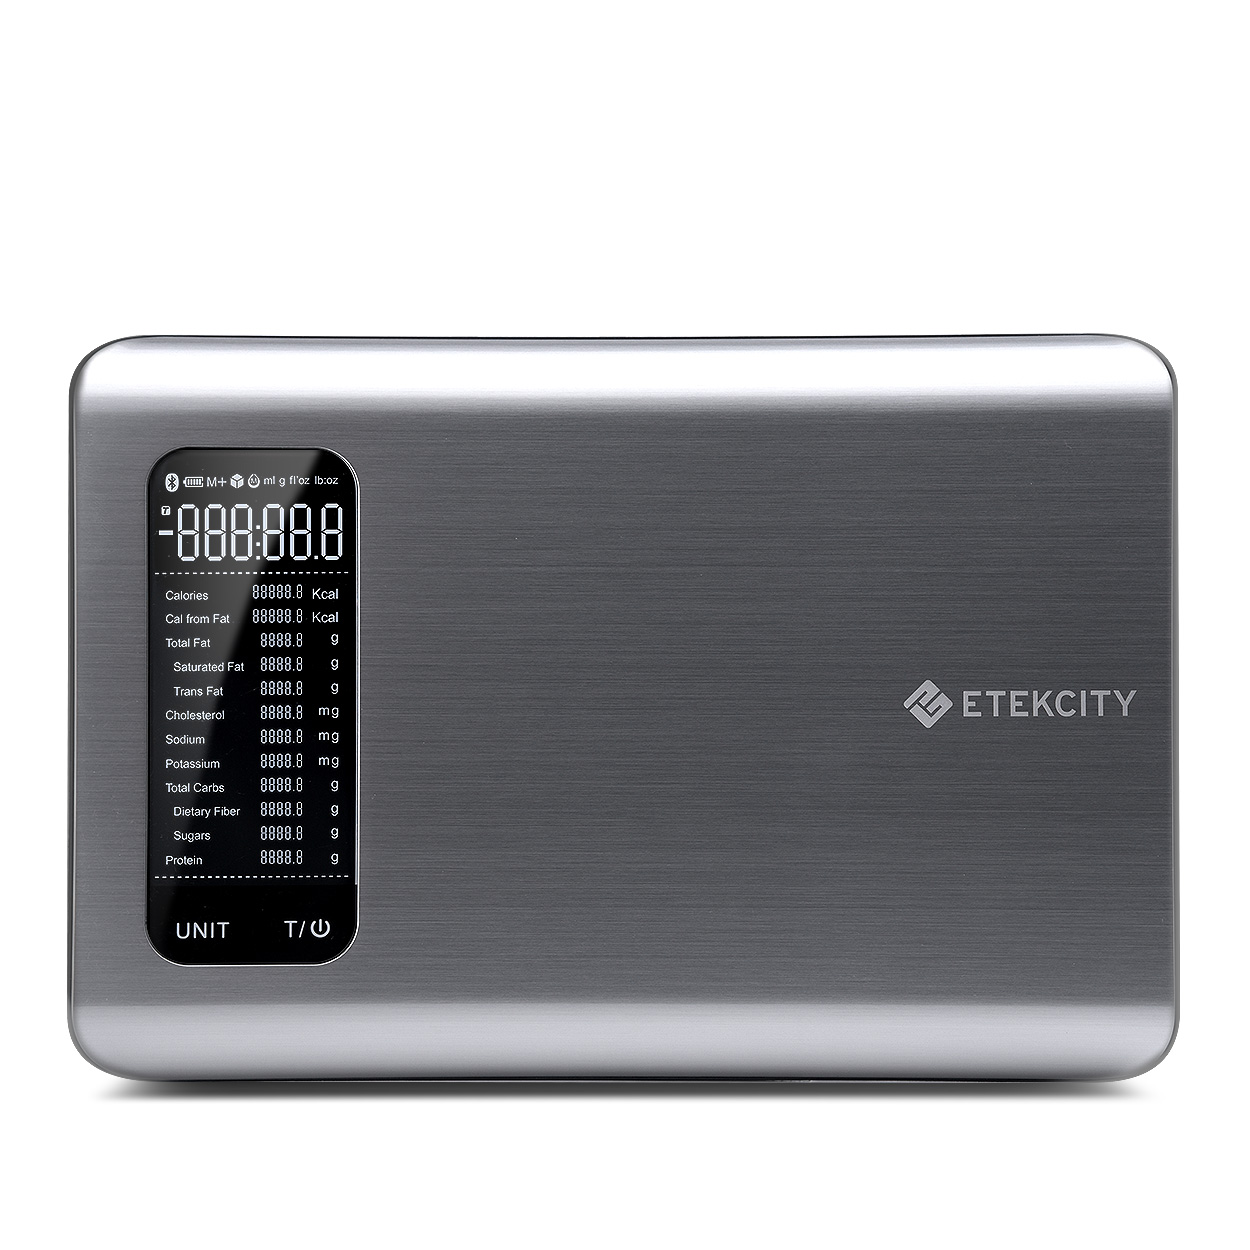 Etekcity Smart Nutrition Scale (ESN00)